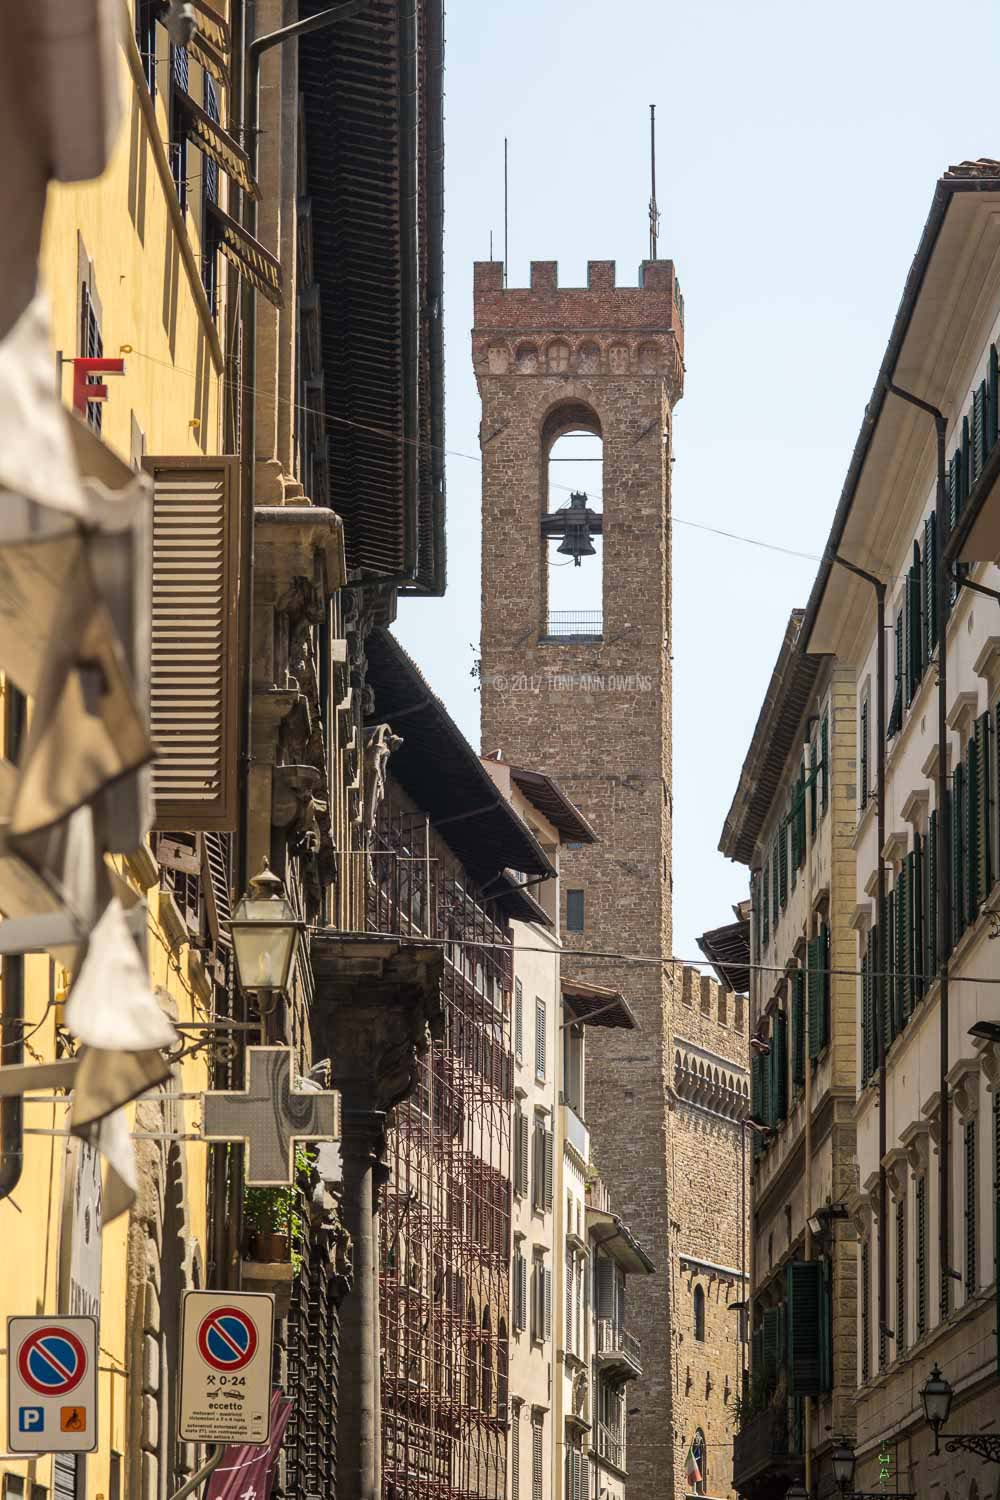 View of the Tower of Palazza Vecchio in Florence, Italy